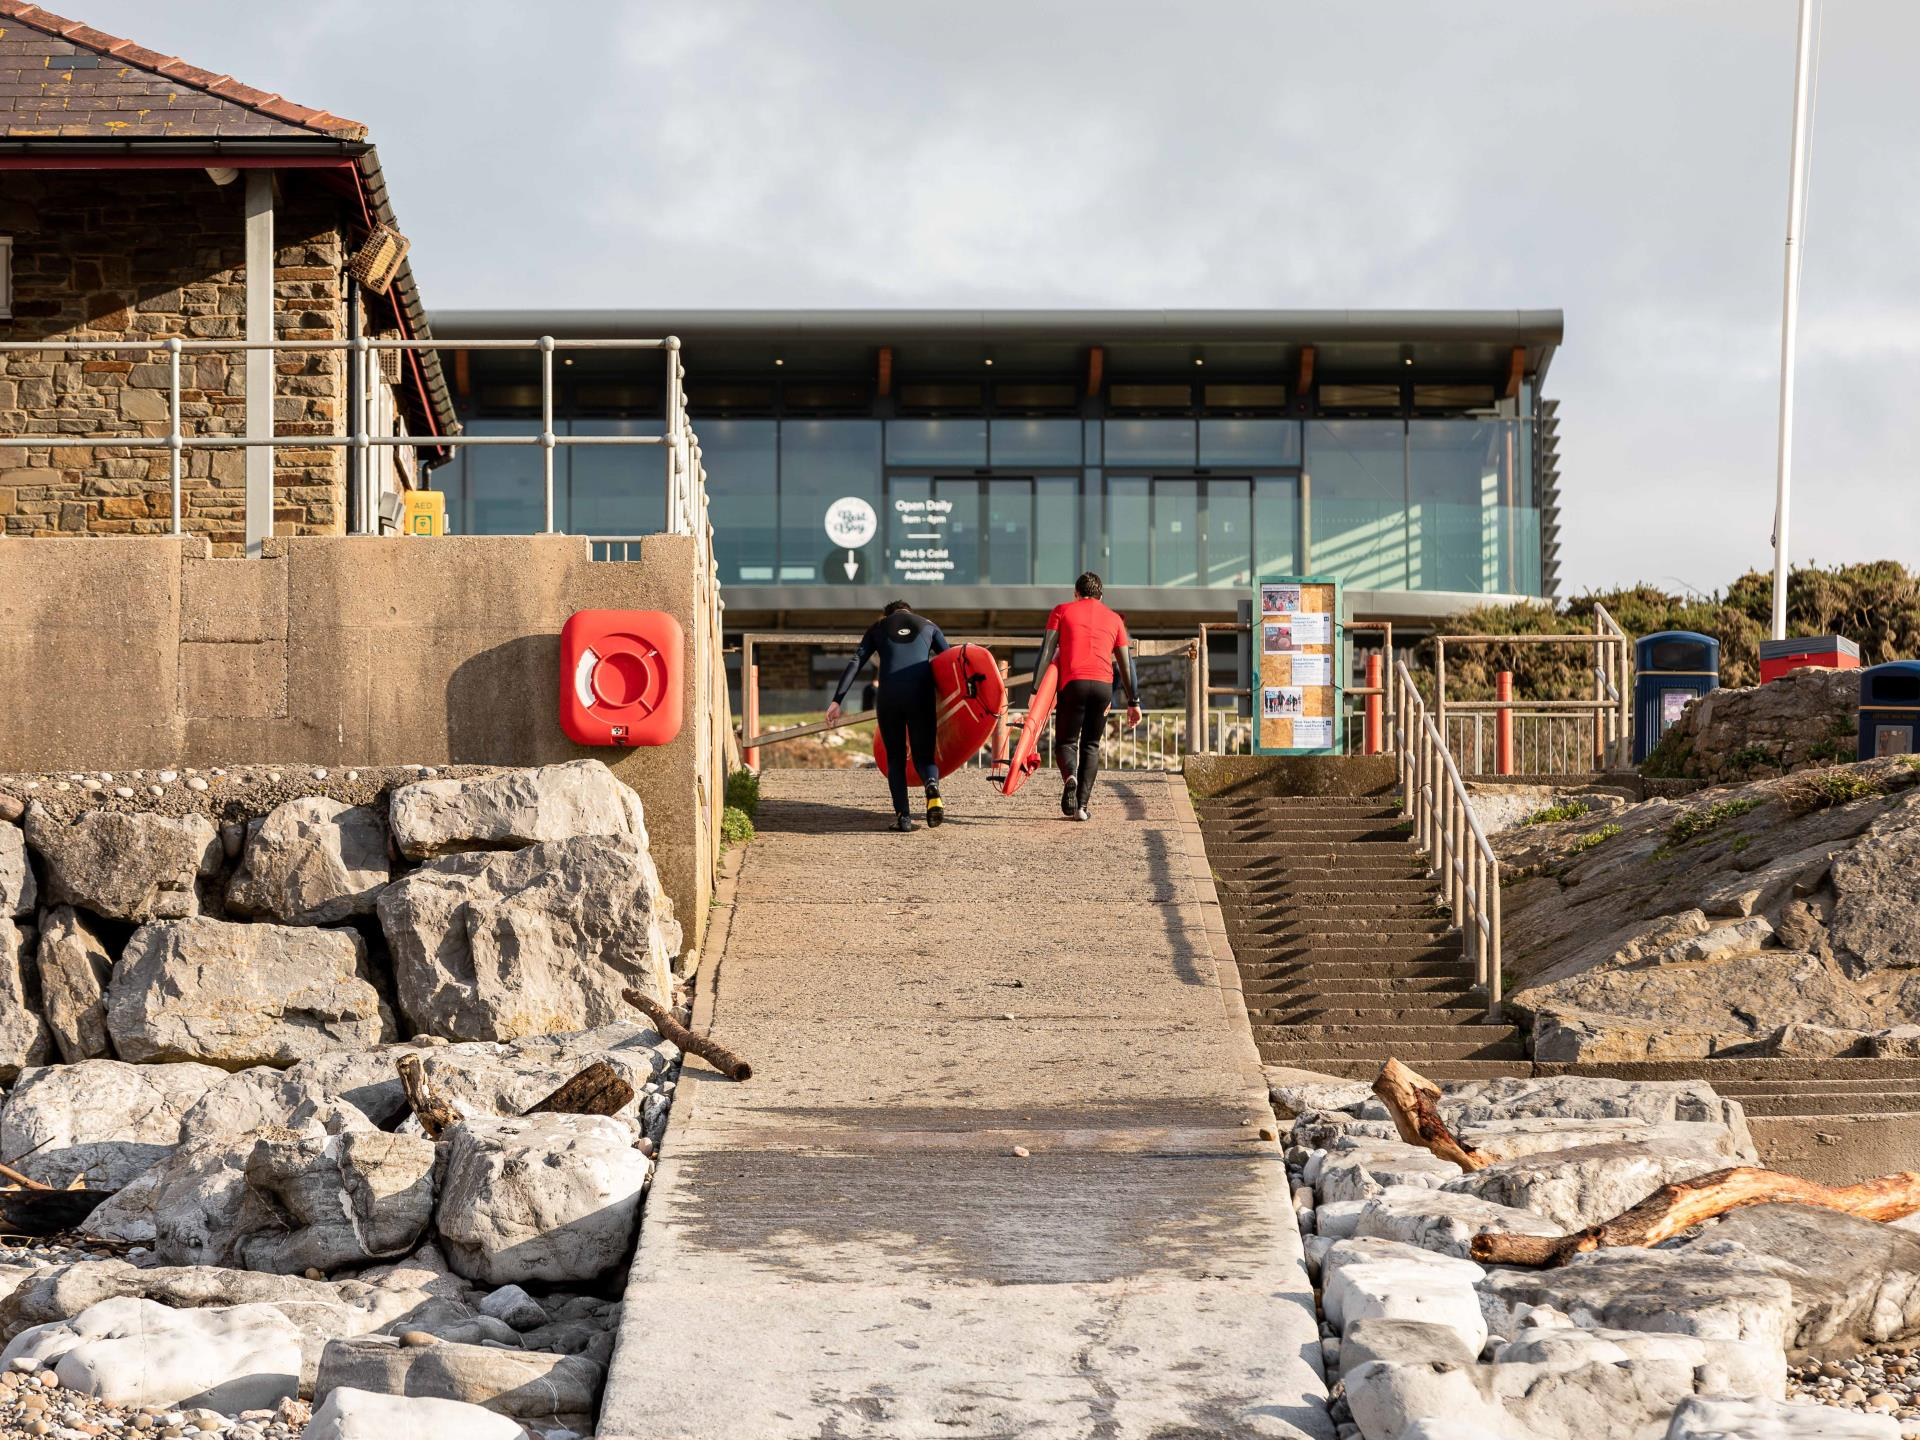 Lifeguard Station at Rest Bay, Porthcawl